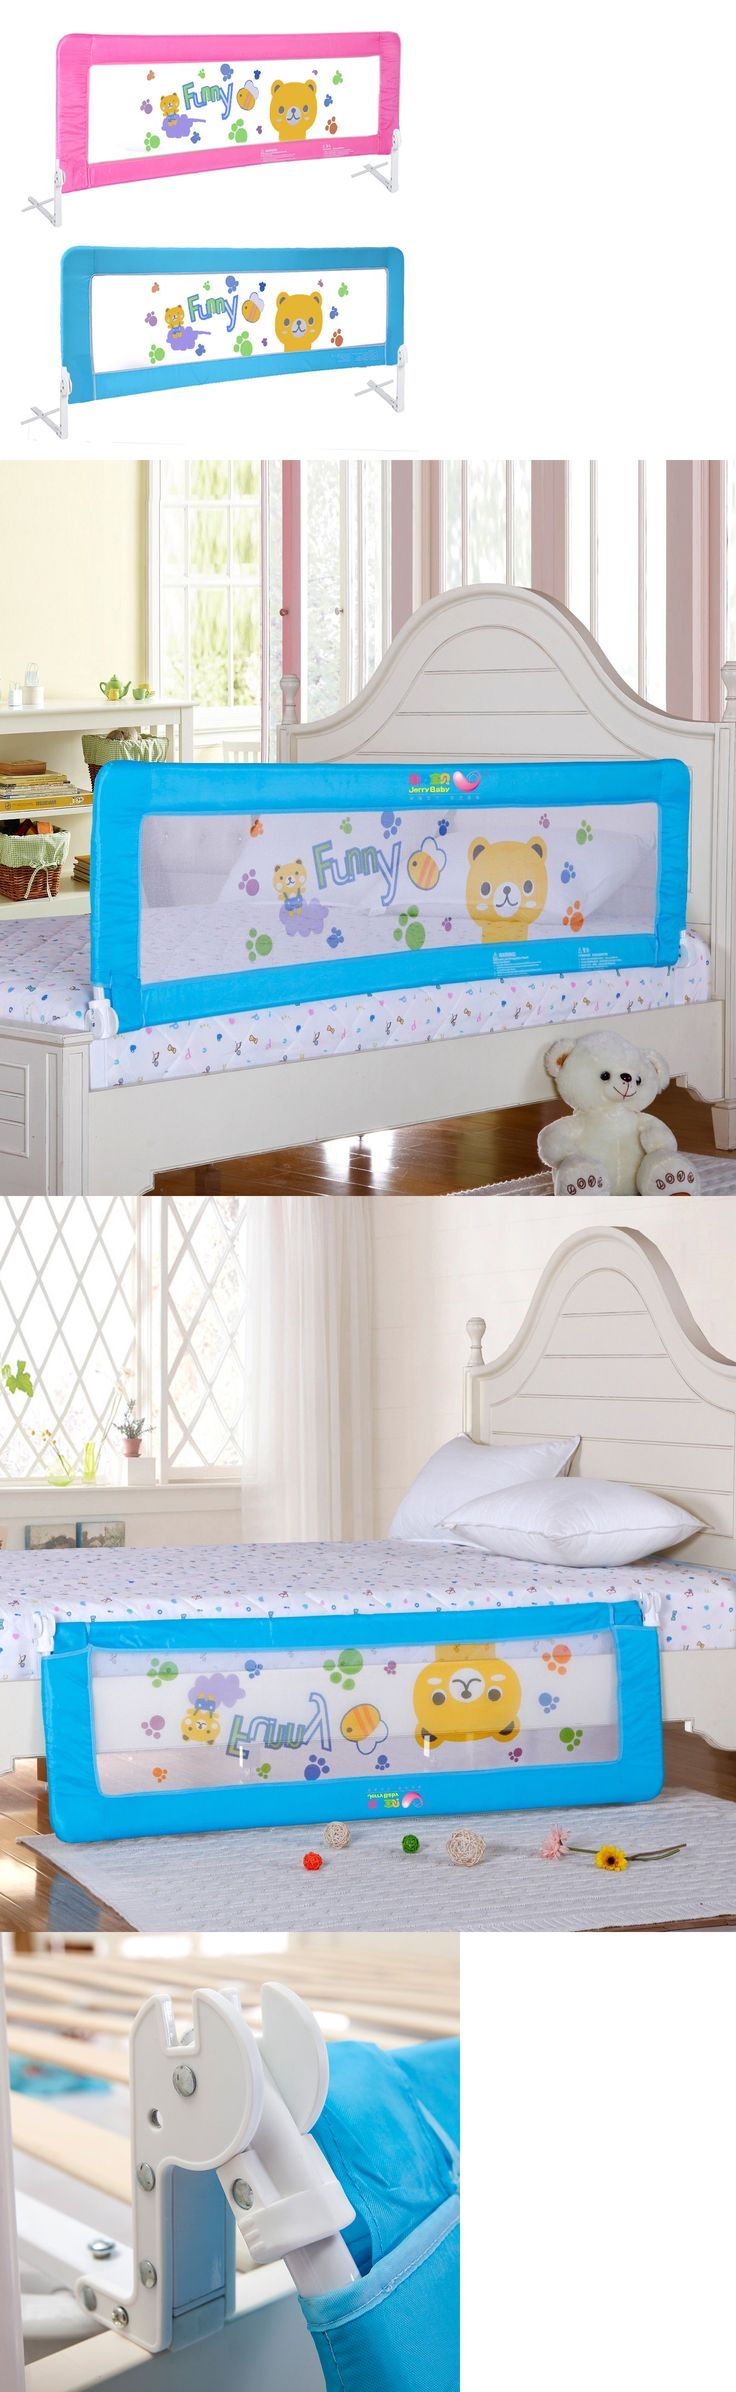 Bed Rails 162183 Double Sided Swing Down Safety Rail Kids Safe Sleep Fence Protector Guard BUY IT NOW ONLY 6199 On EBay